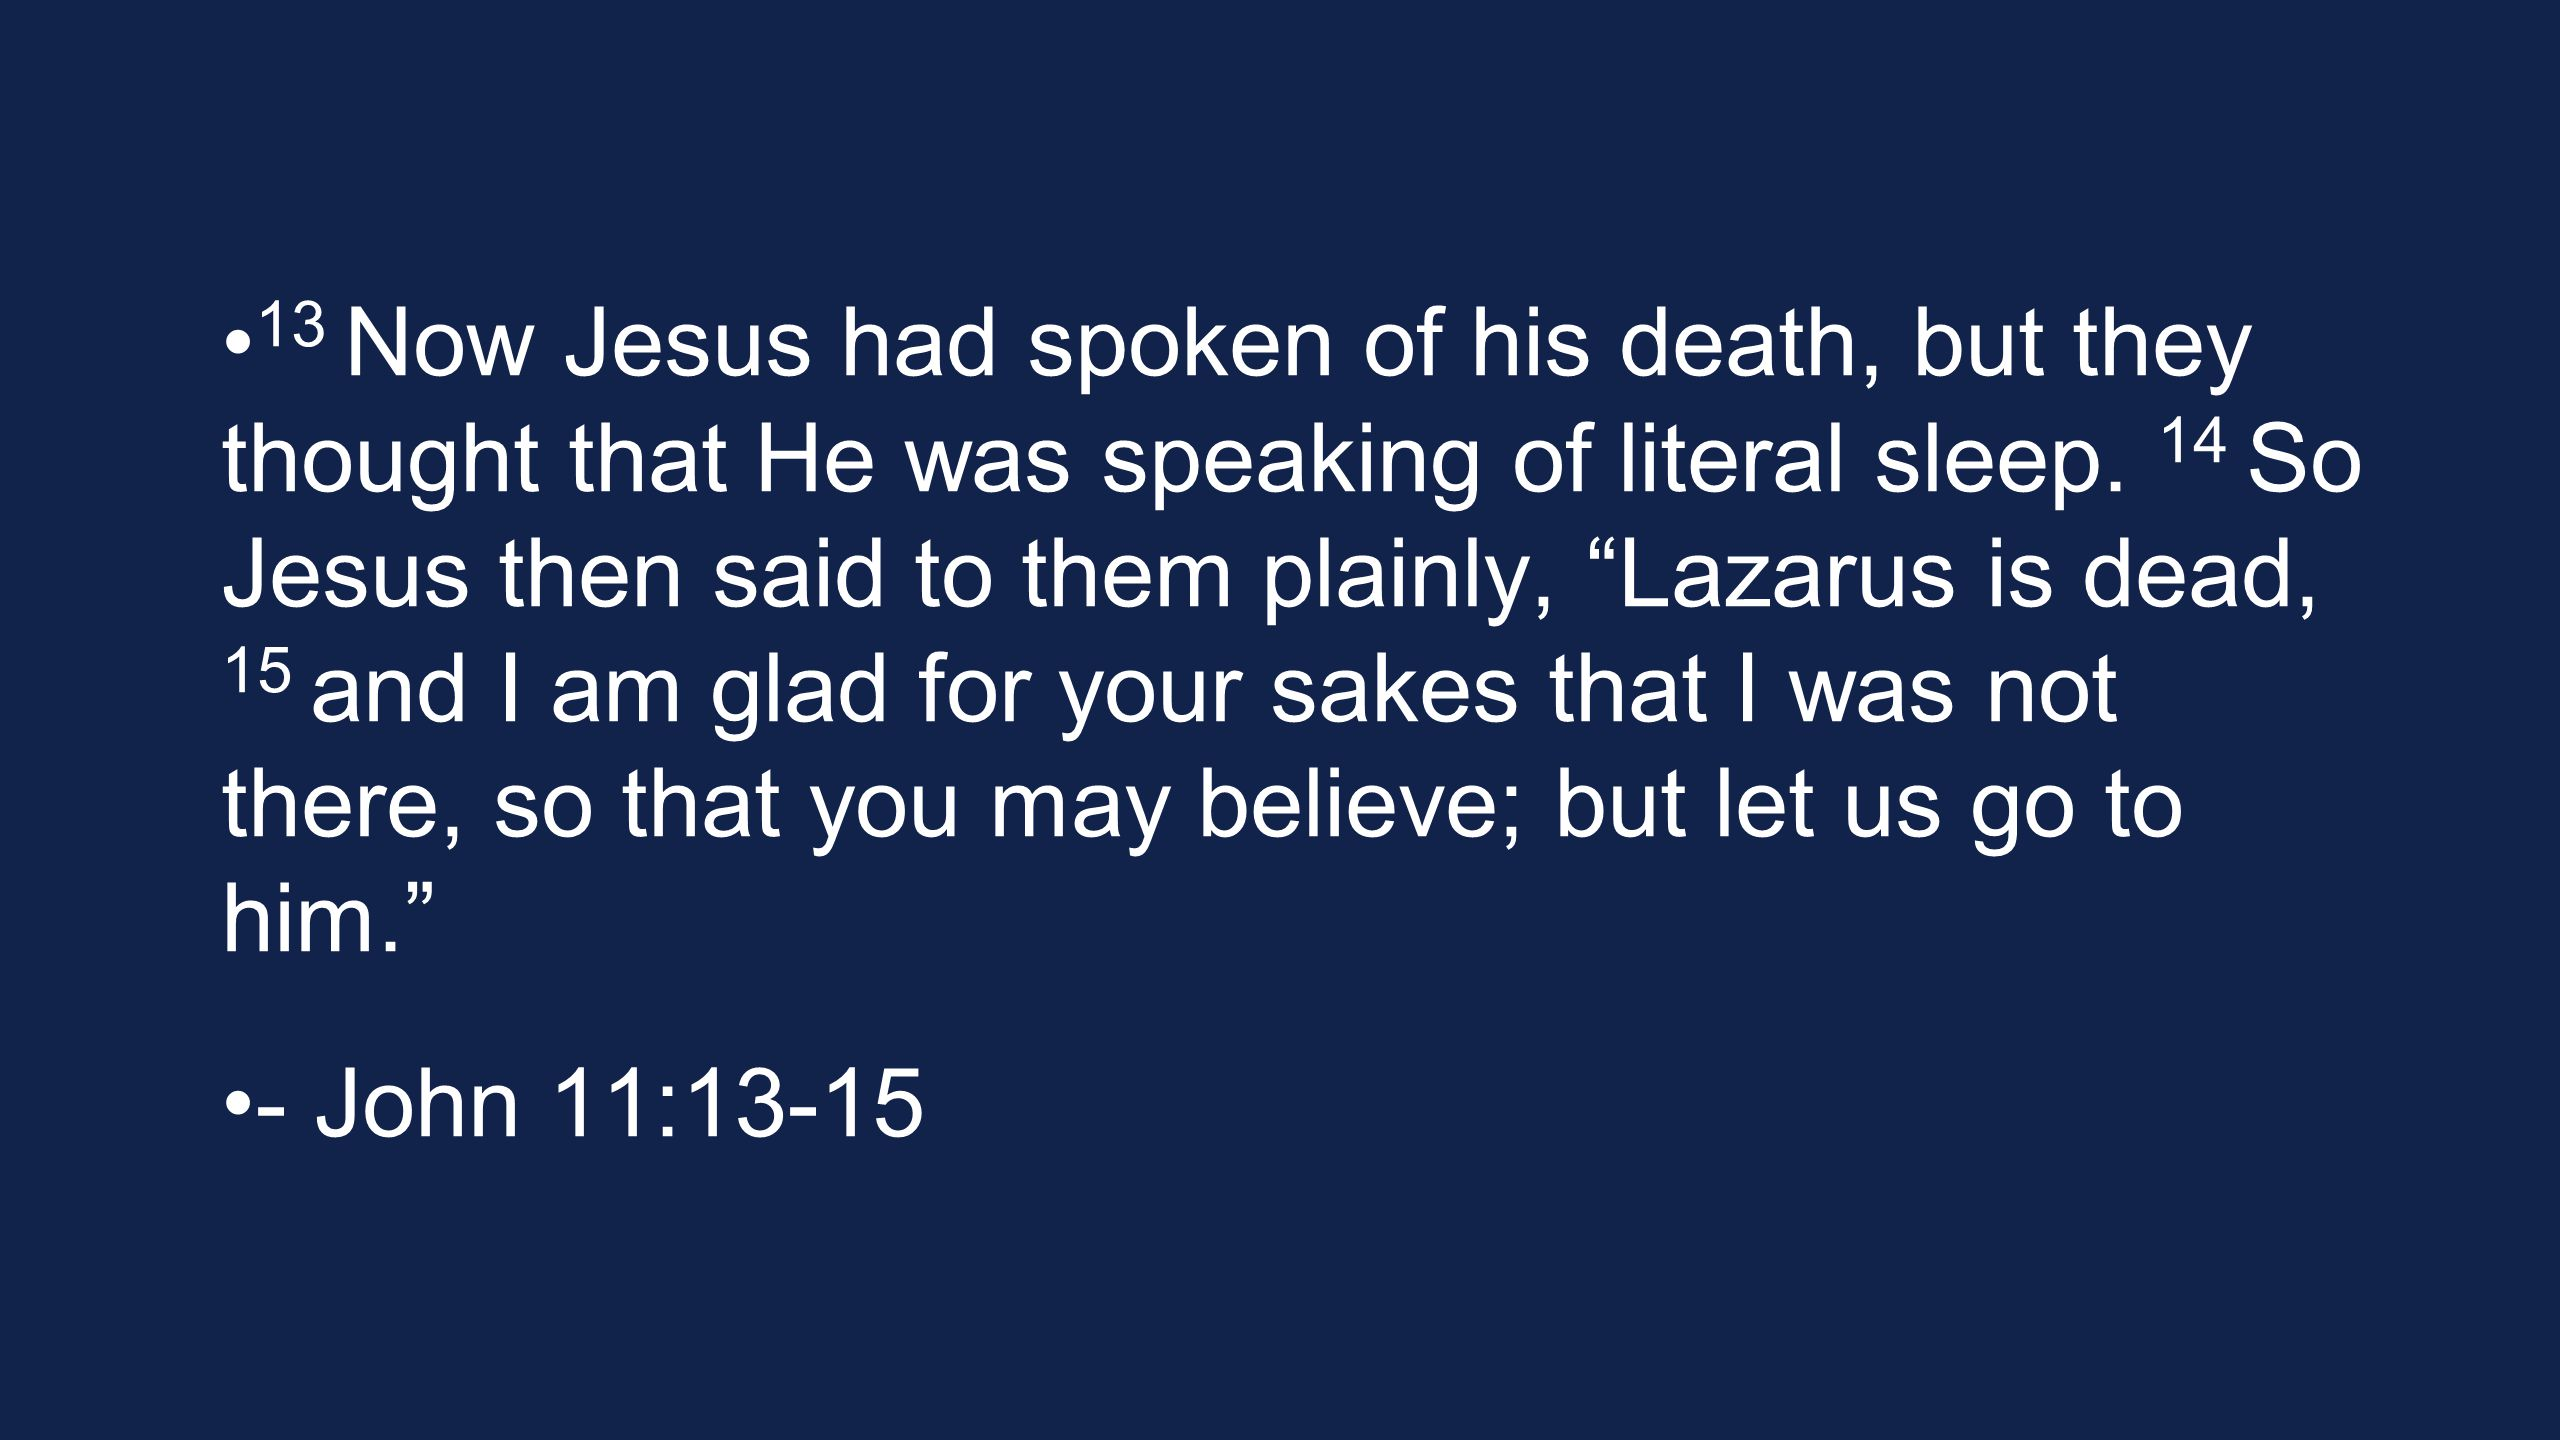 13 Now Jesus had spoken of his death, but they thought that He was speaking of literal sleep.